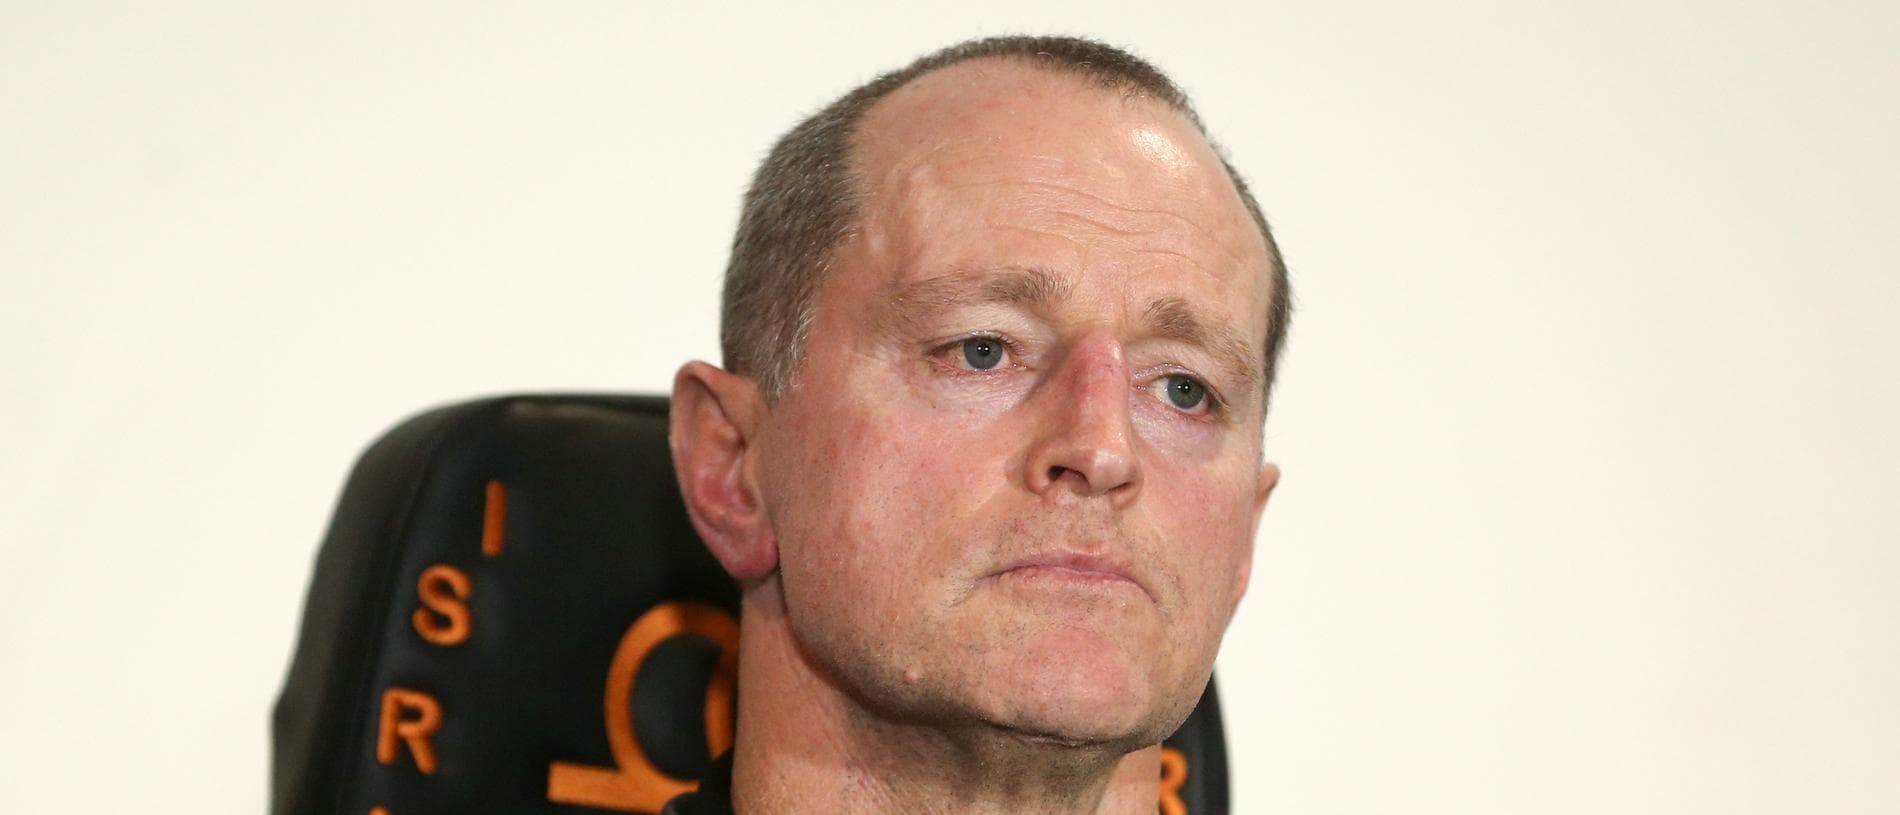 Tigers coach, Michael Maguire addresses the media following the Round 5 NRL match between the Wests Tigers and the Canberra Raiders at Campbelltown Stadium in Sydney, Saturday, June 13, 2020. (AAP Image/Brendon Thorne) NO ARCHIVING, EDITORIAL USE ONLY